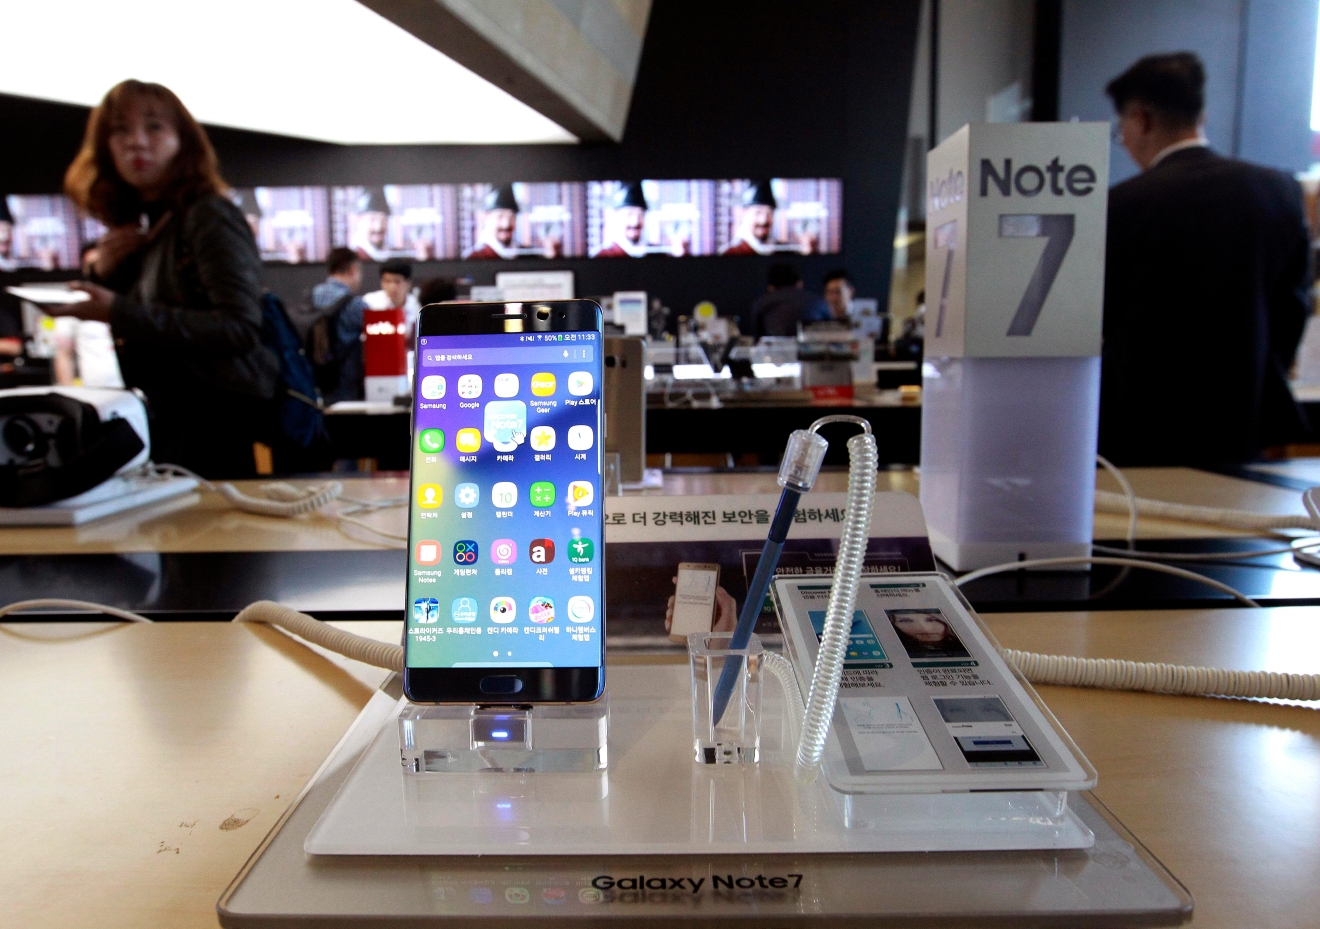 Samsung Electronics Galaxy Note 7 smartphone is displayed at a mobile phone shop in Seoul, South Korea, Monday, Oct. 10, 2016. (AP Photo/Ahn Young-joon)